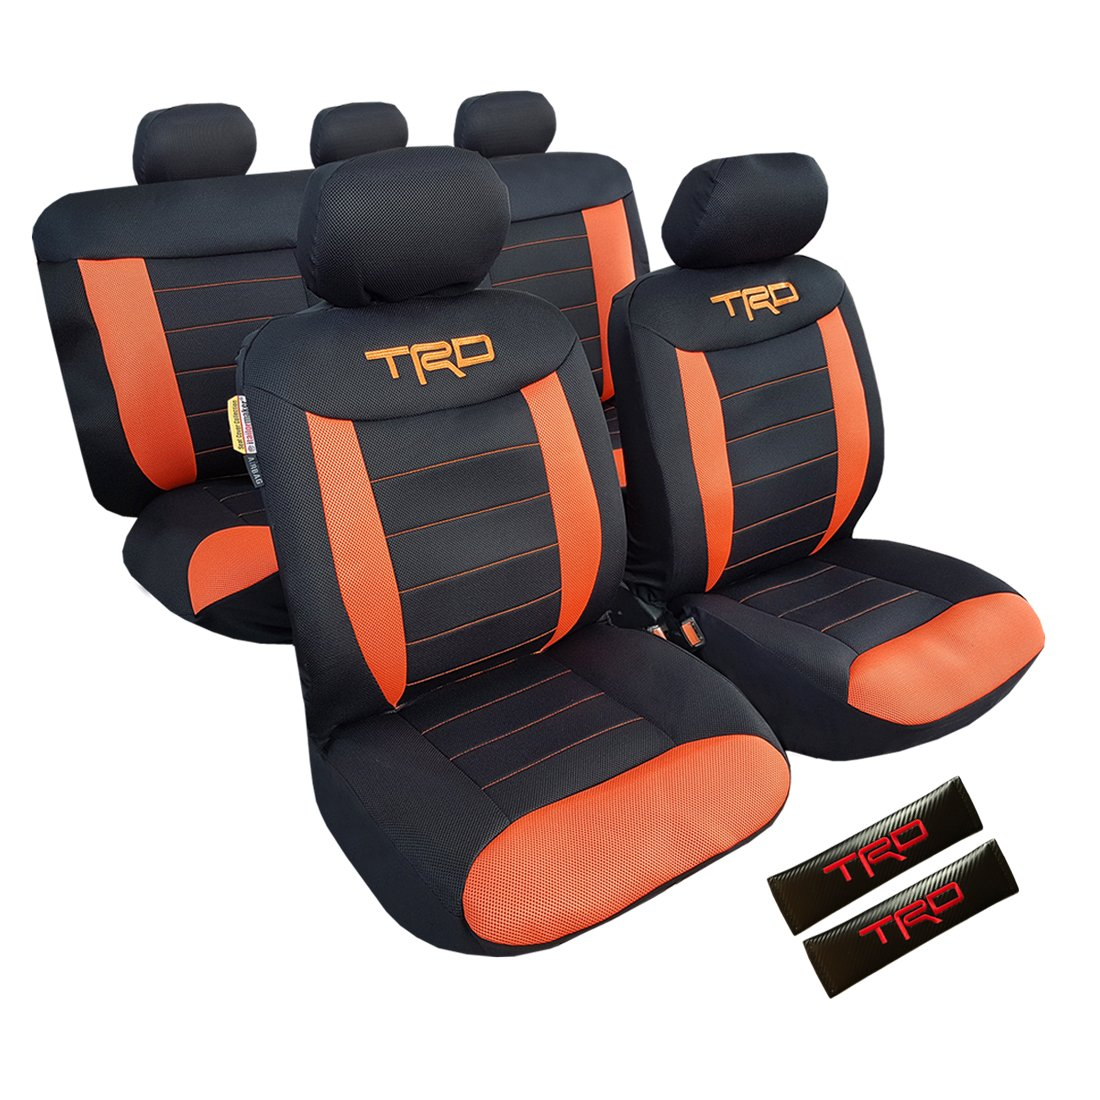 Astounding Cheap Tan Seat Cover Find Tan Seat Cover Deals On Line At Spiritservingveterans Wood Chair Design Ideas Spiritservingveteransorg